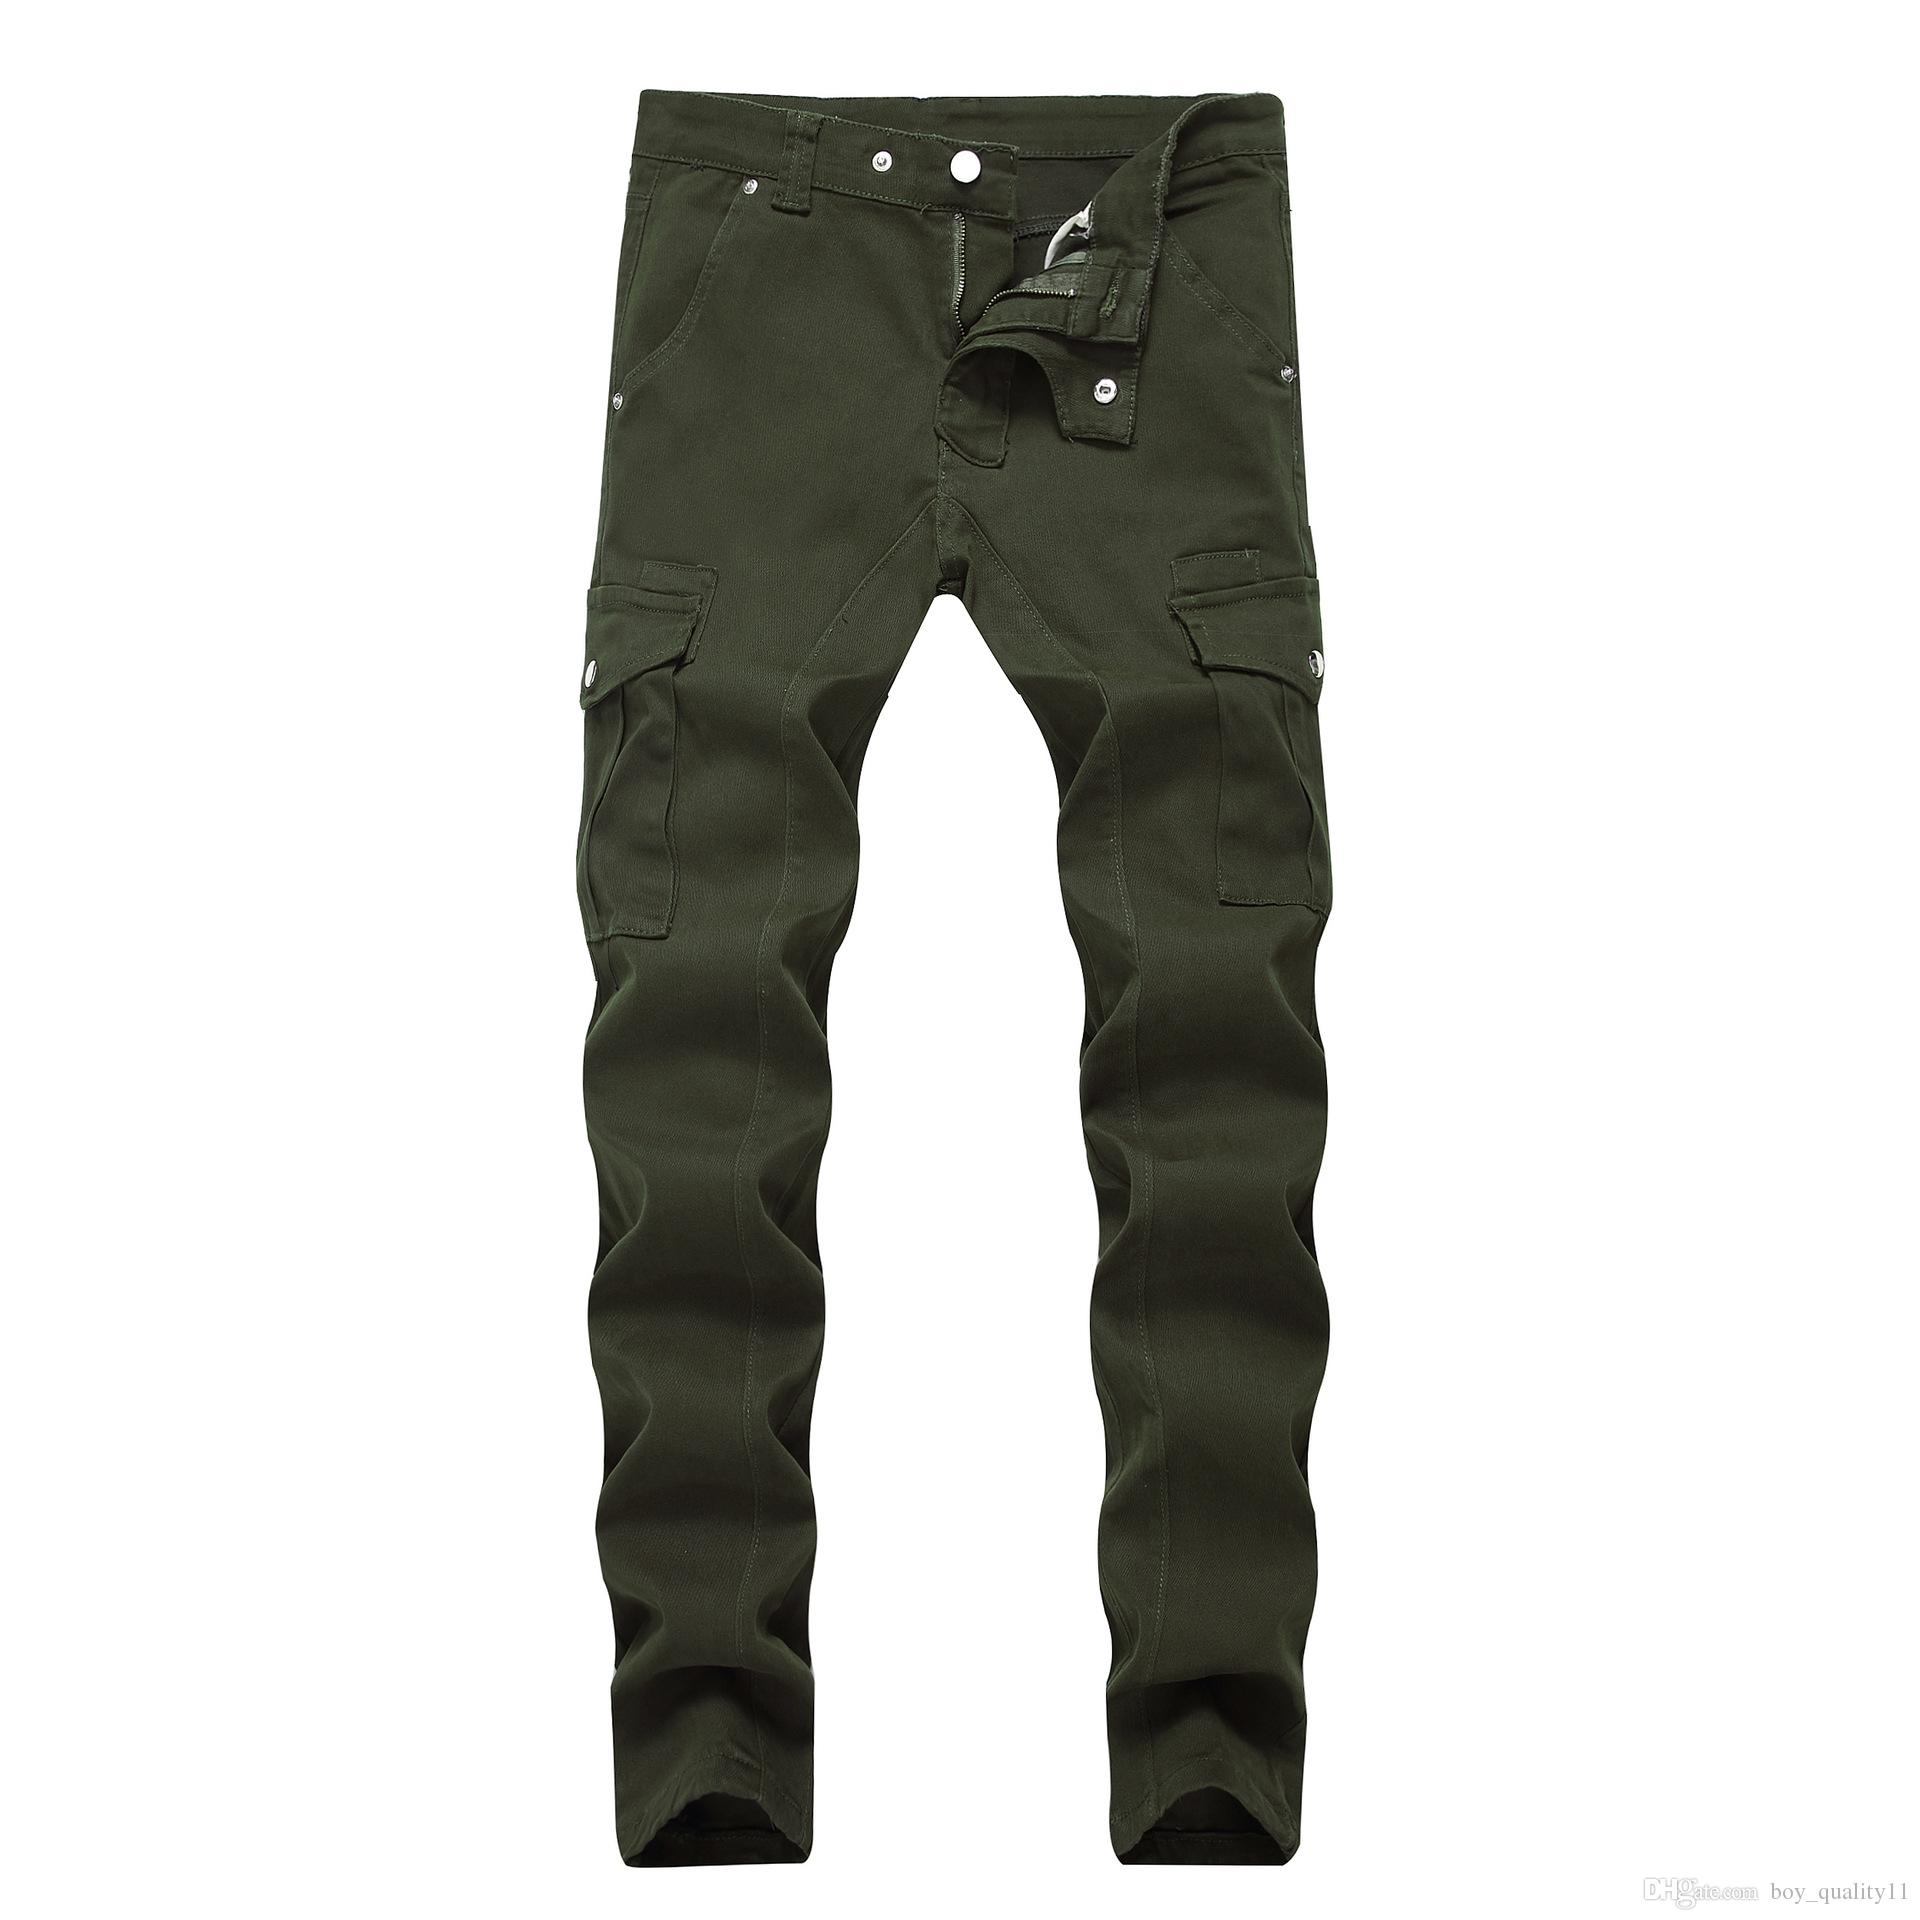 Qersonality Quality Cycling Jeans Ripped Designer Hole Stone Wash Slim Straight Motorcycle Denim Jogging Pants 28-40